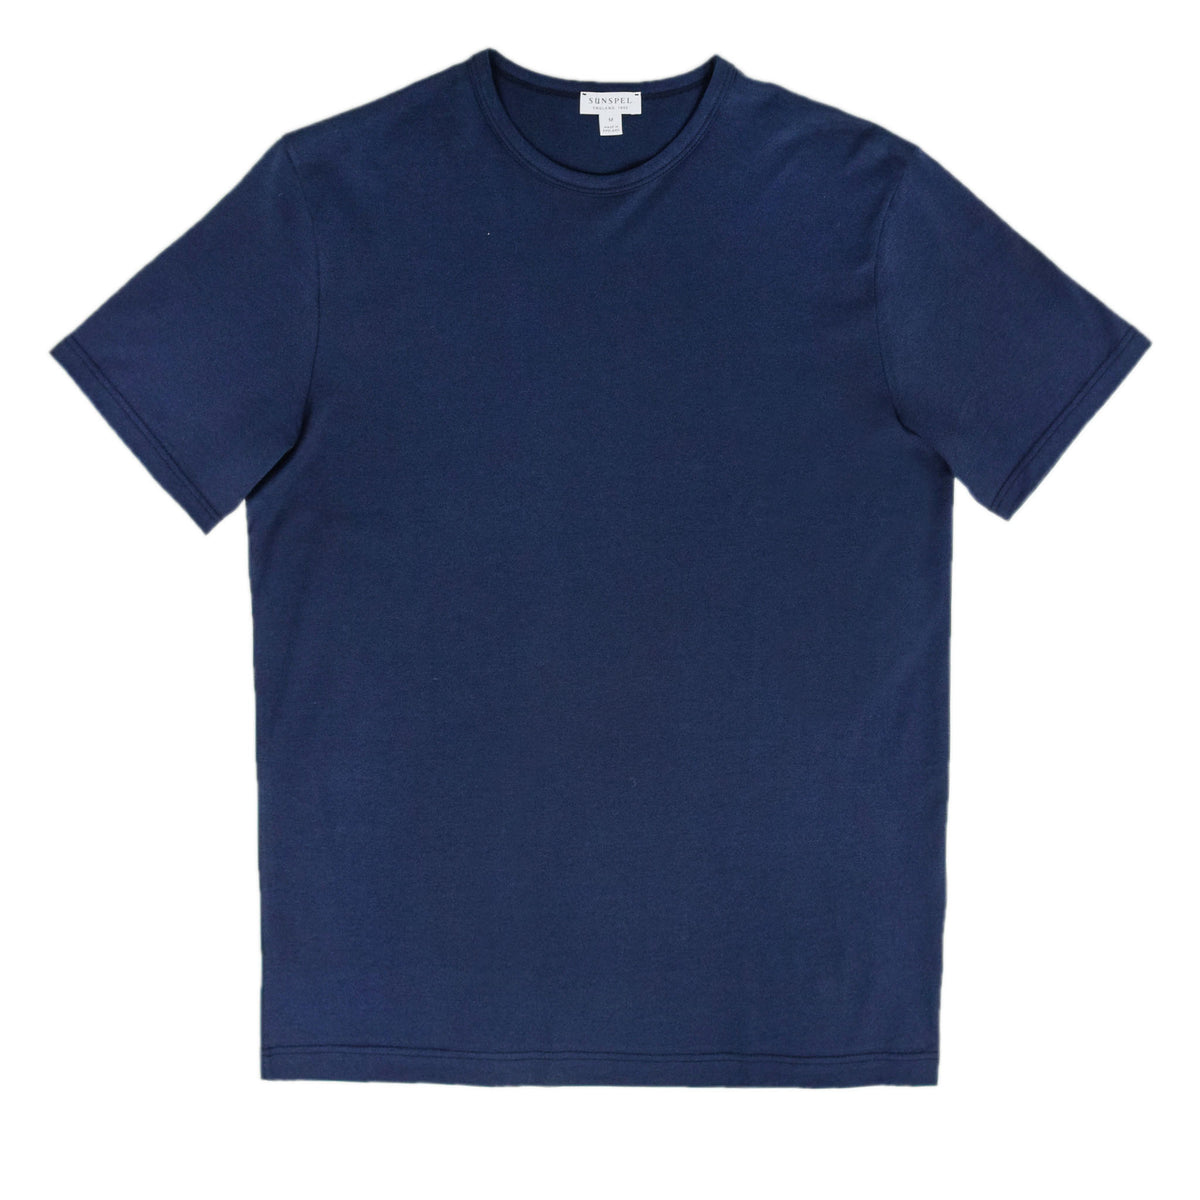 Sunspel Classic Crew T-Shirt Navy front